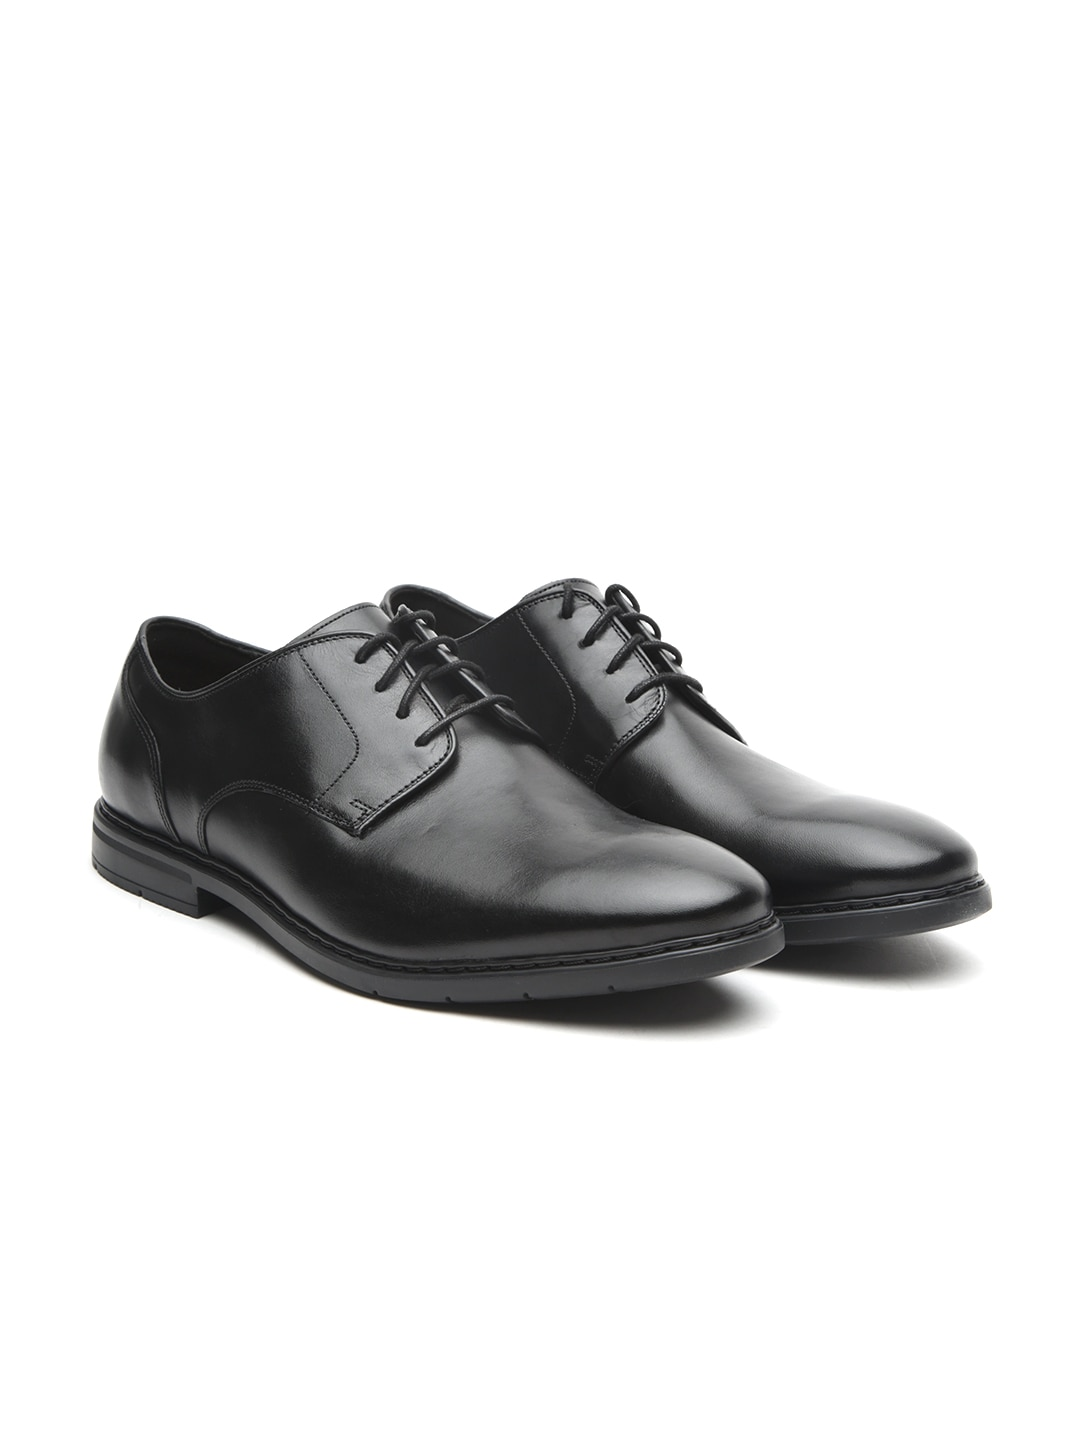 079100c8e9ddd CLARKS - Exclusive Clarks Shoes Online Store in India - Myntra